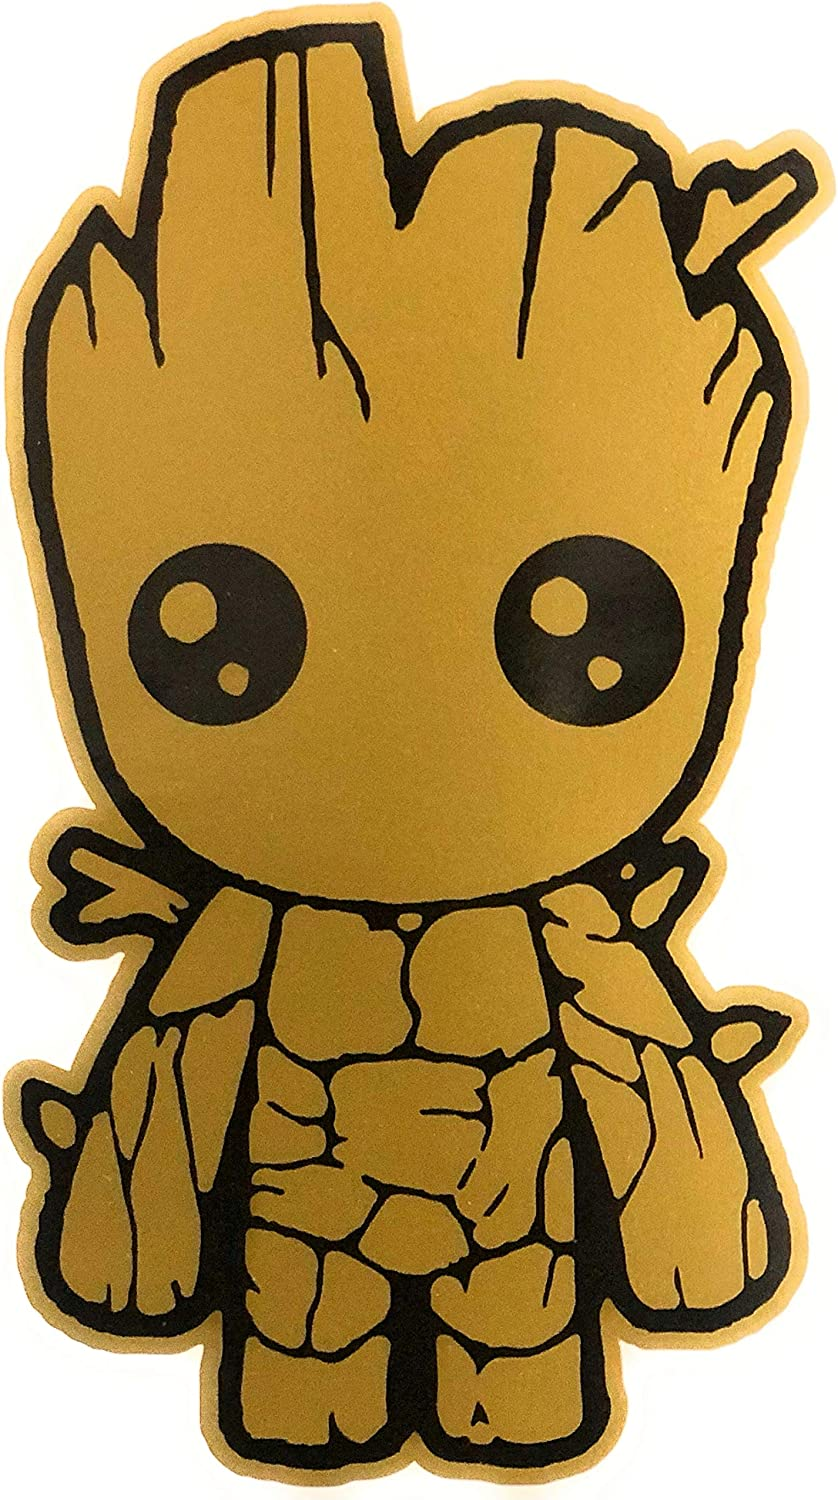 Baby Groot Gold Color Vinyl Sticker Decal - 5.5 inches - for Car Truck SUV Van Window Bumper Wall Laptop MacBook Tablet Cup Tumbler Skateboard and Any Smooth Surface